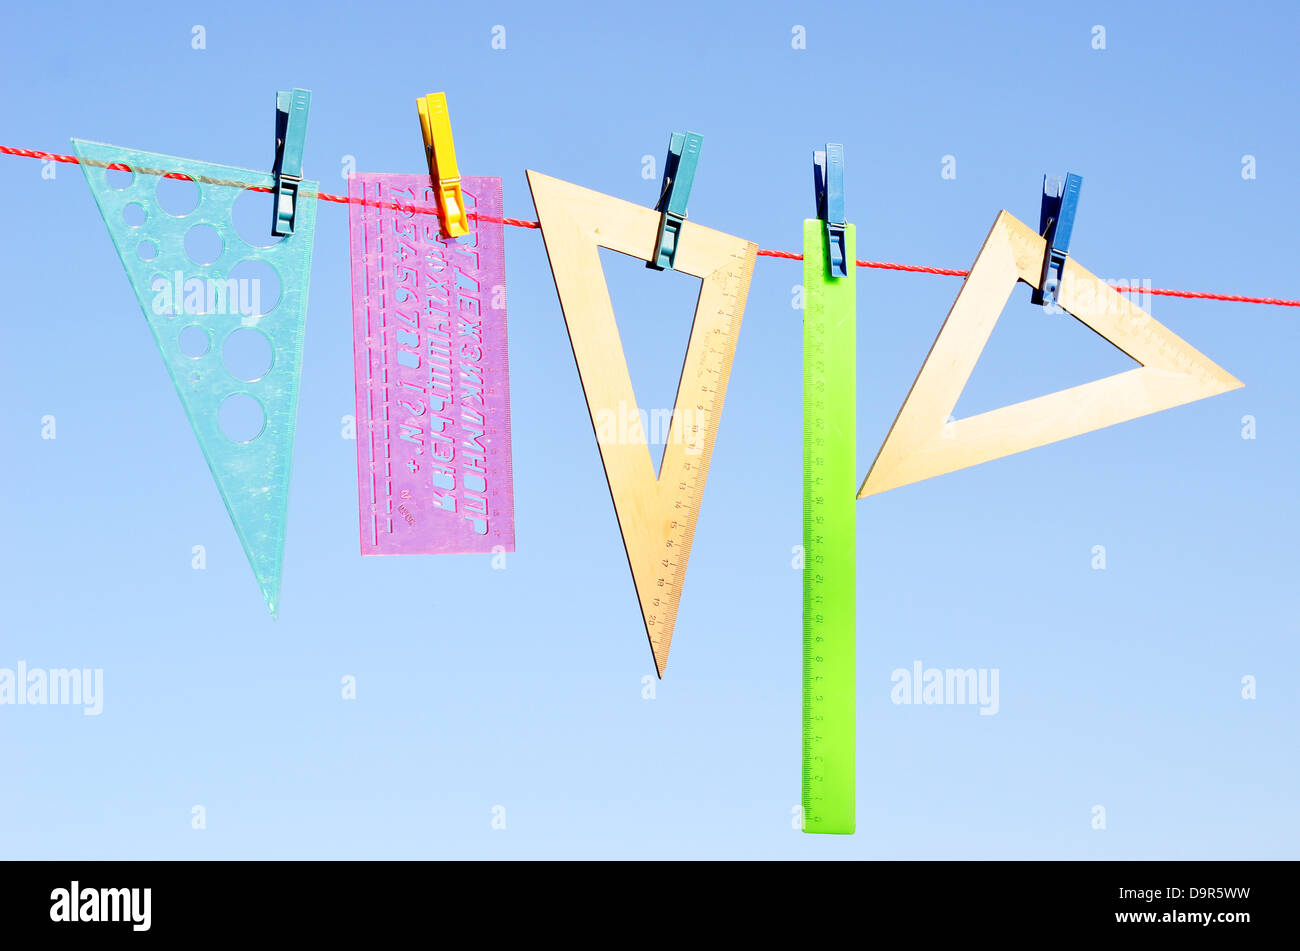 wooden and plastic rulers on washing line against sky - Stock Image